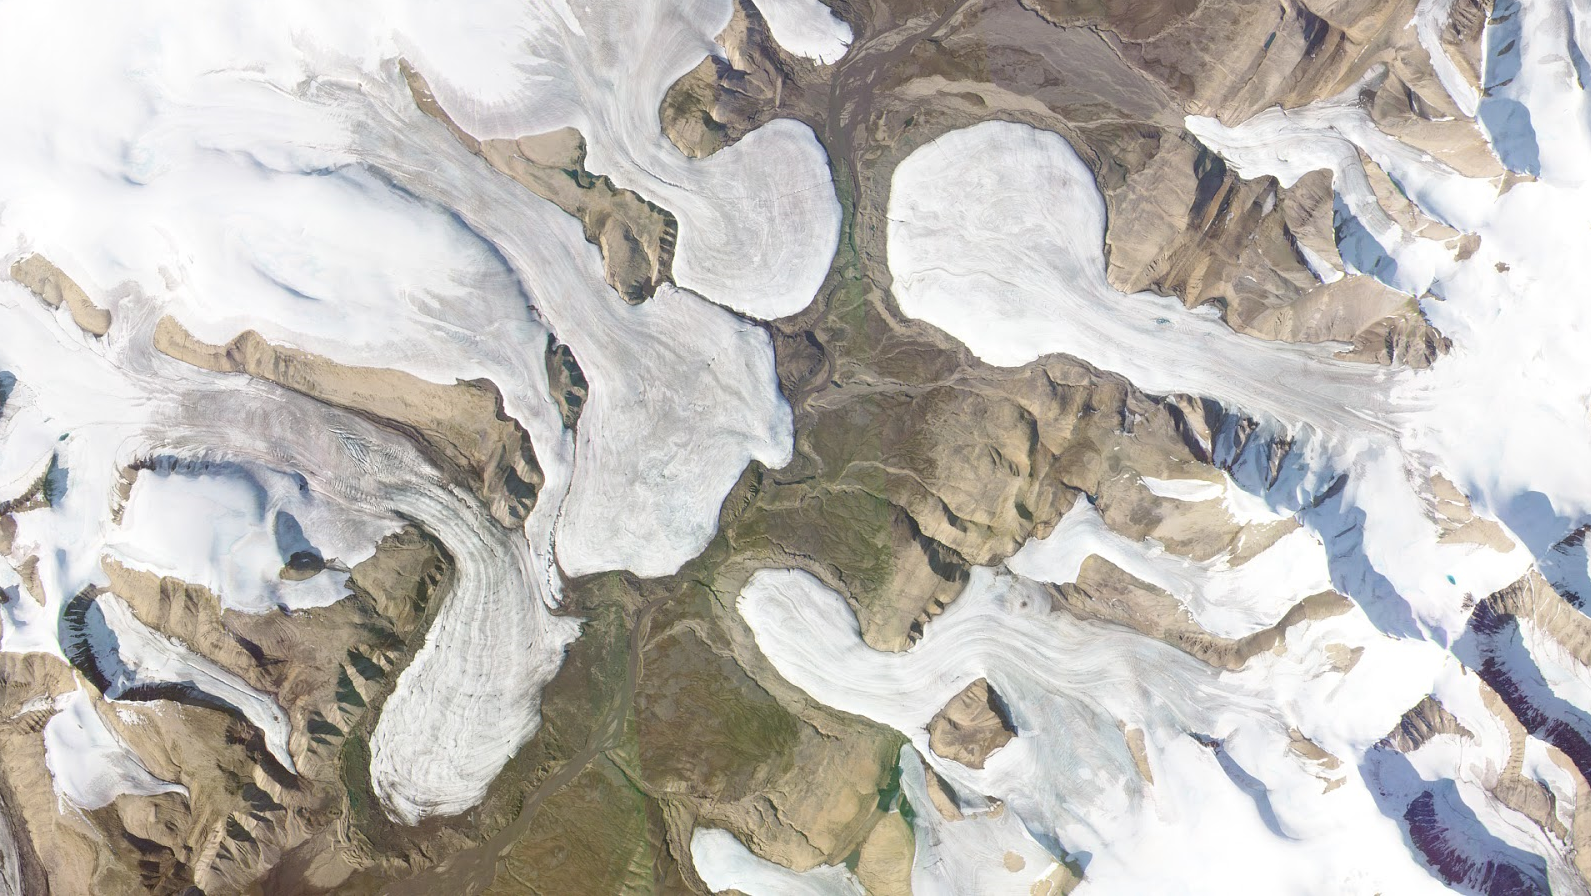 Glaciers spill into a barren valley on Axel Heiberg Island, Canada. PlanetScope image collected on August 15, 2019. © 2019, Planet Labs Inc. All Rights Reserved.